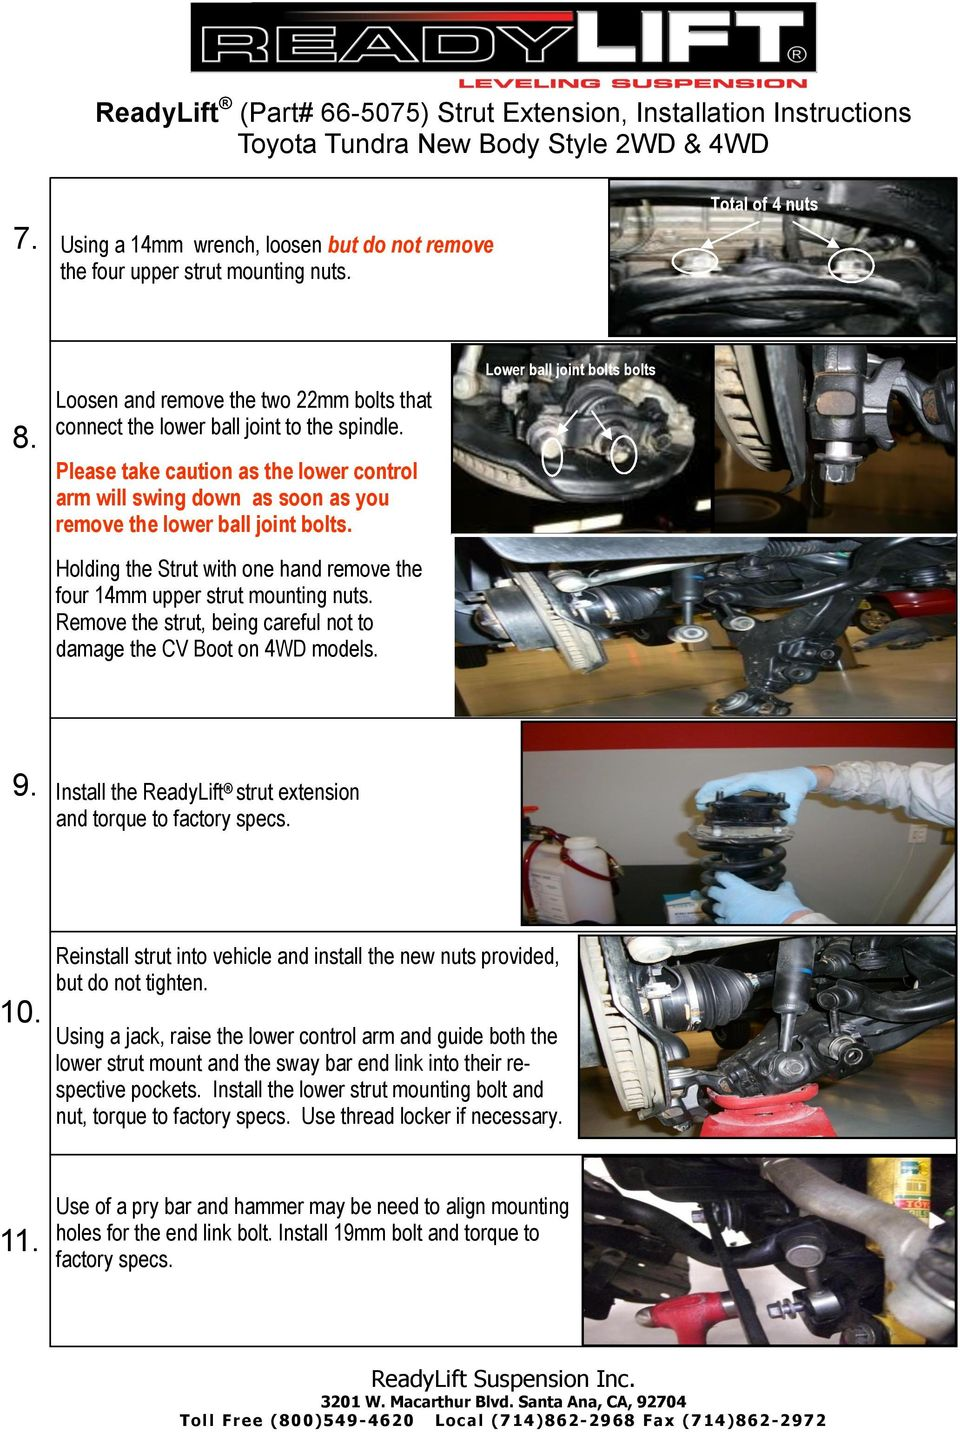 Remove the strut, being careful not to damage the CV Boot on 4WD models. Lower ball joint bolts bolts 9. Install the ReadyLift strut extension and torque to factory specs. 10.